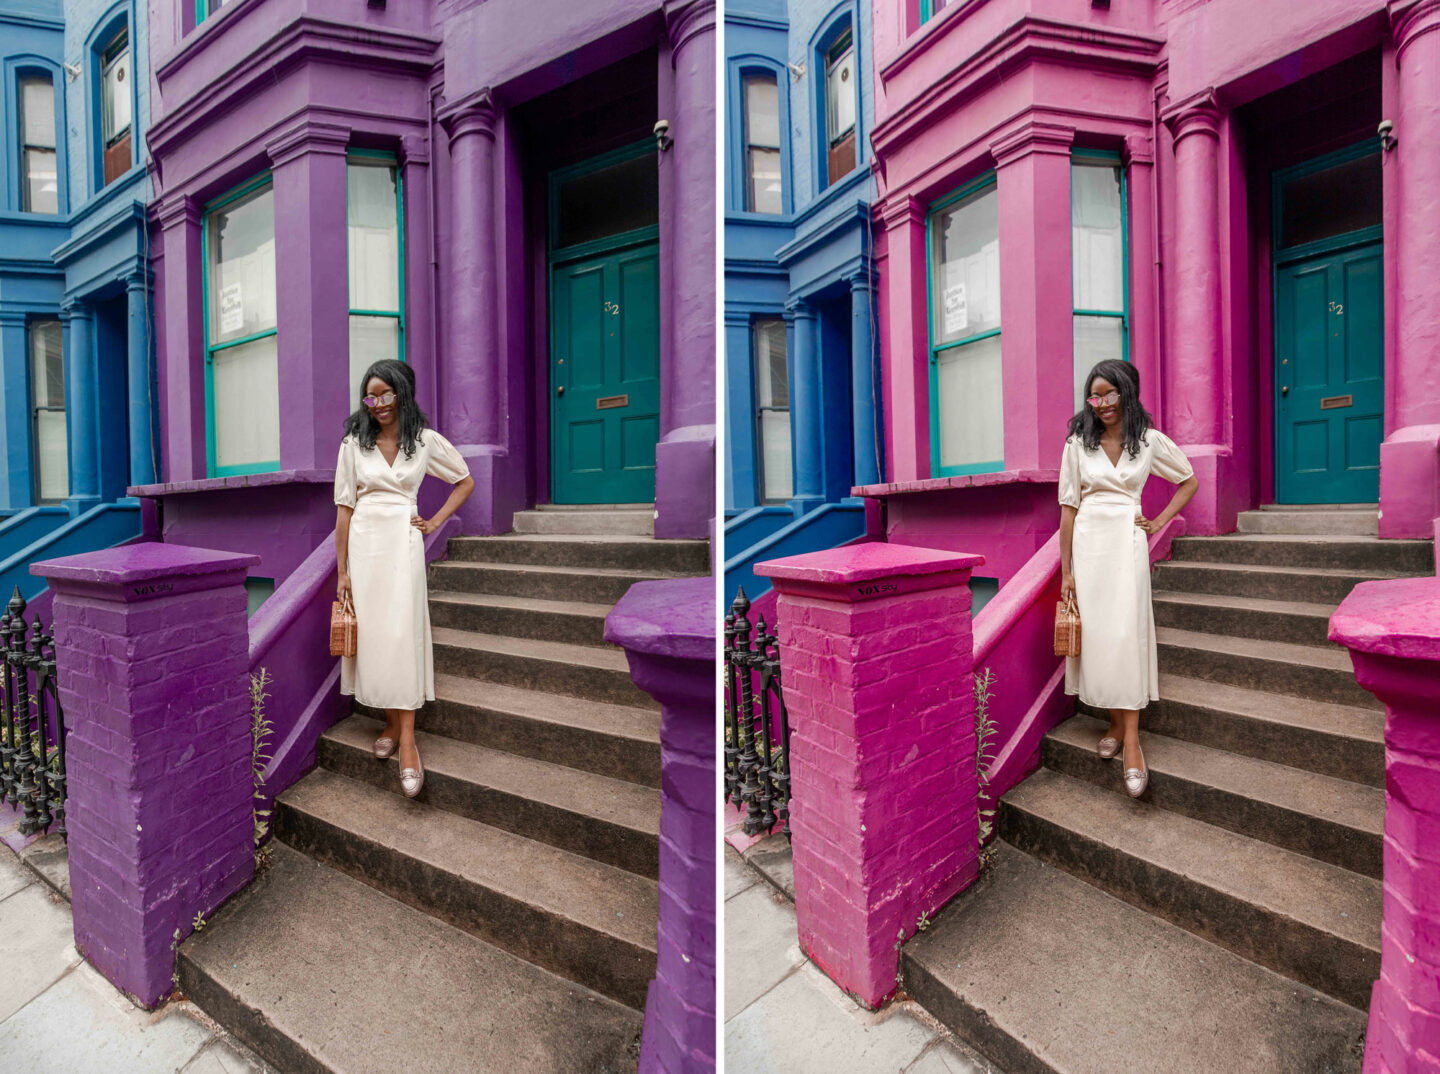 kelseyinlondon kelsey heinrichs london instagram spots notting hill guide adobe lancaster road